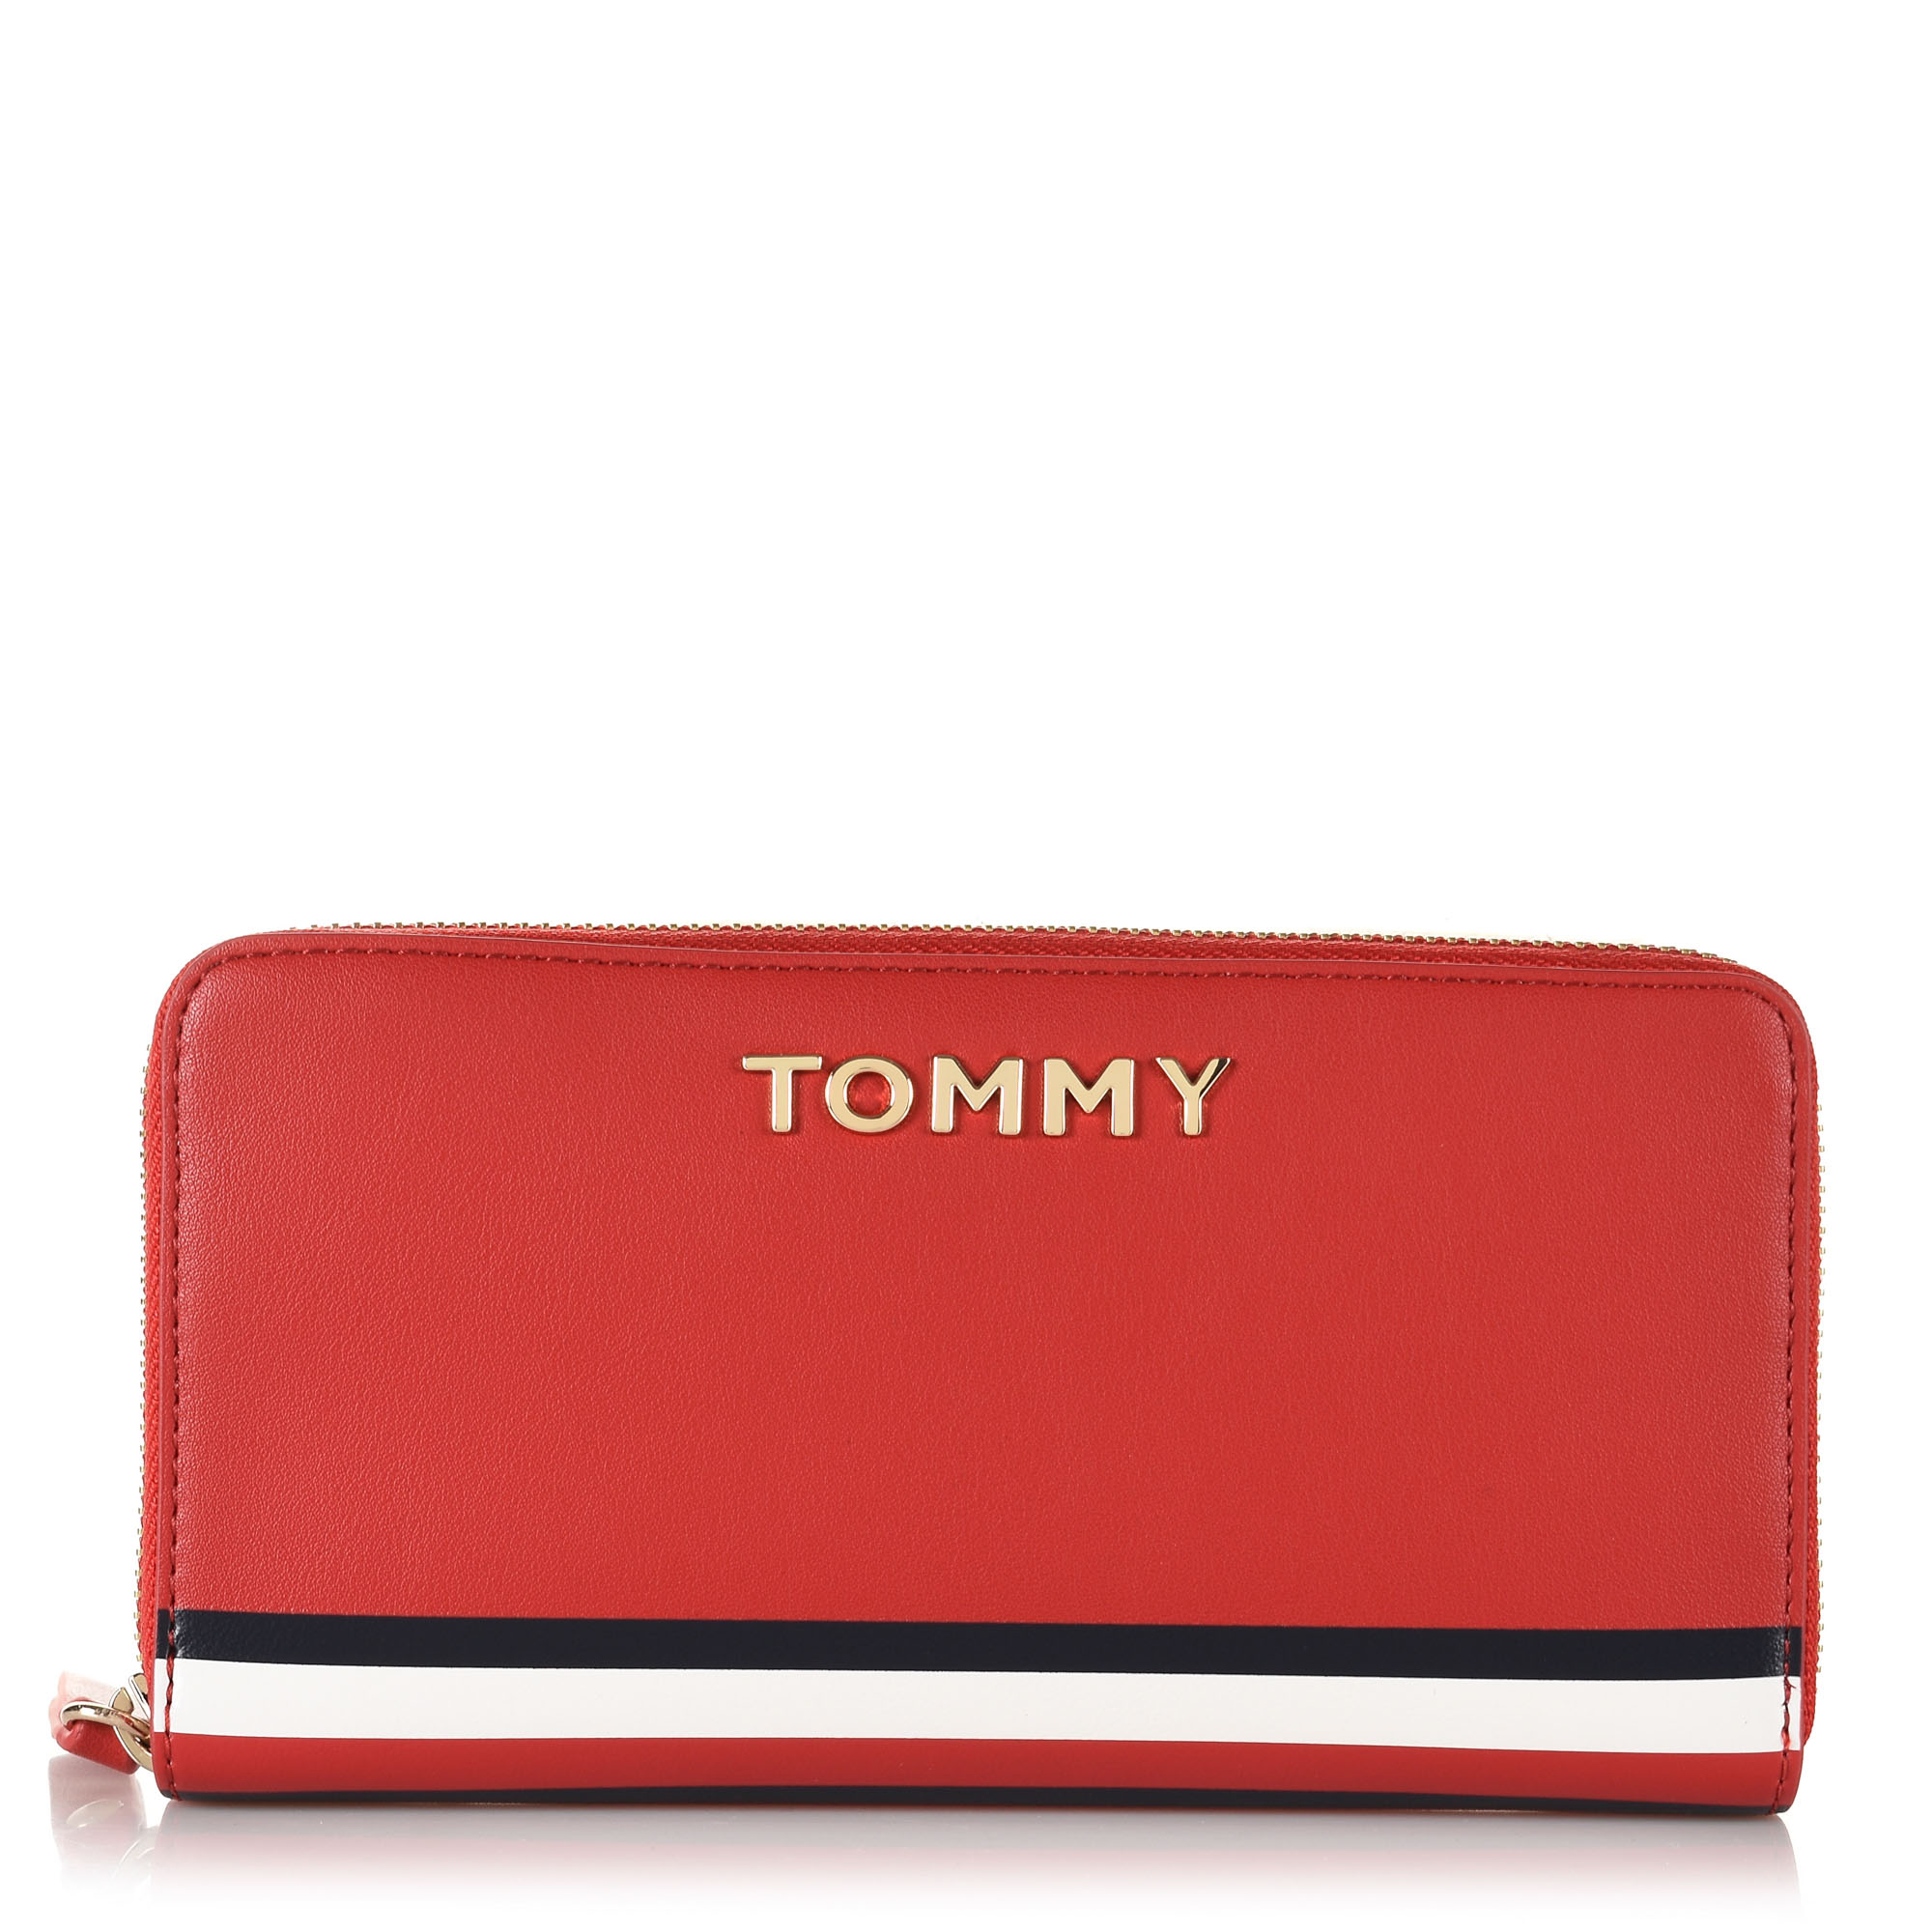 Πορτοφόλι Κασετίνα Tommy Hilfiger Corporate LRG ZA Wallet AW0AW07736